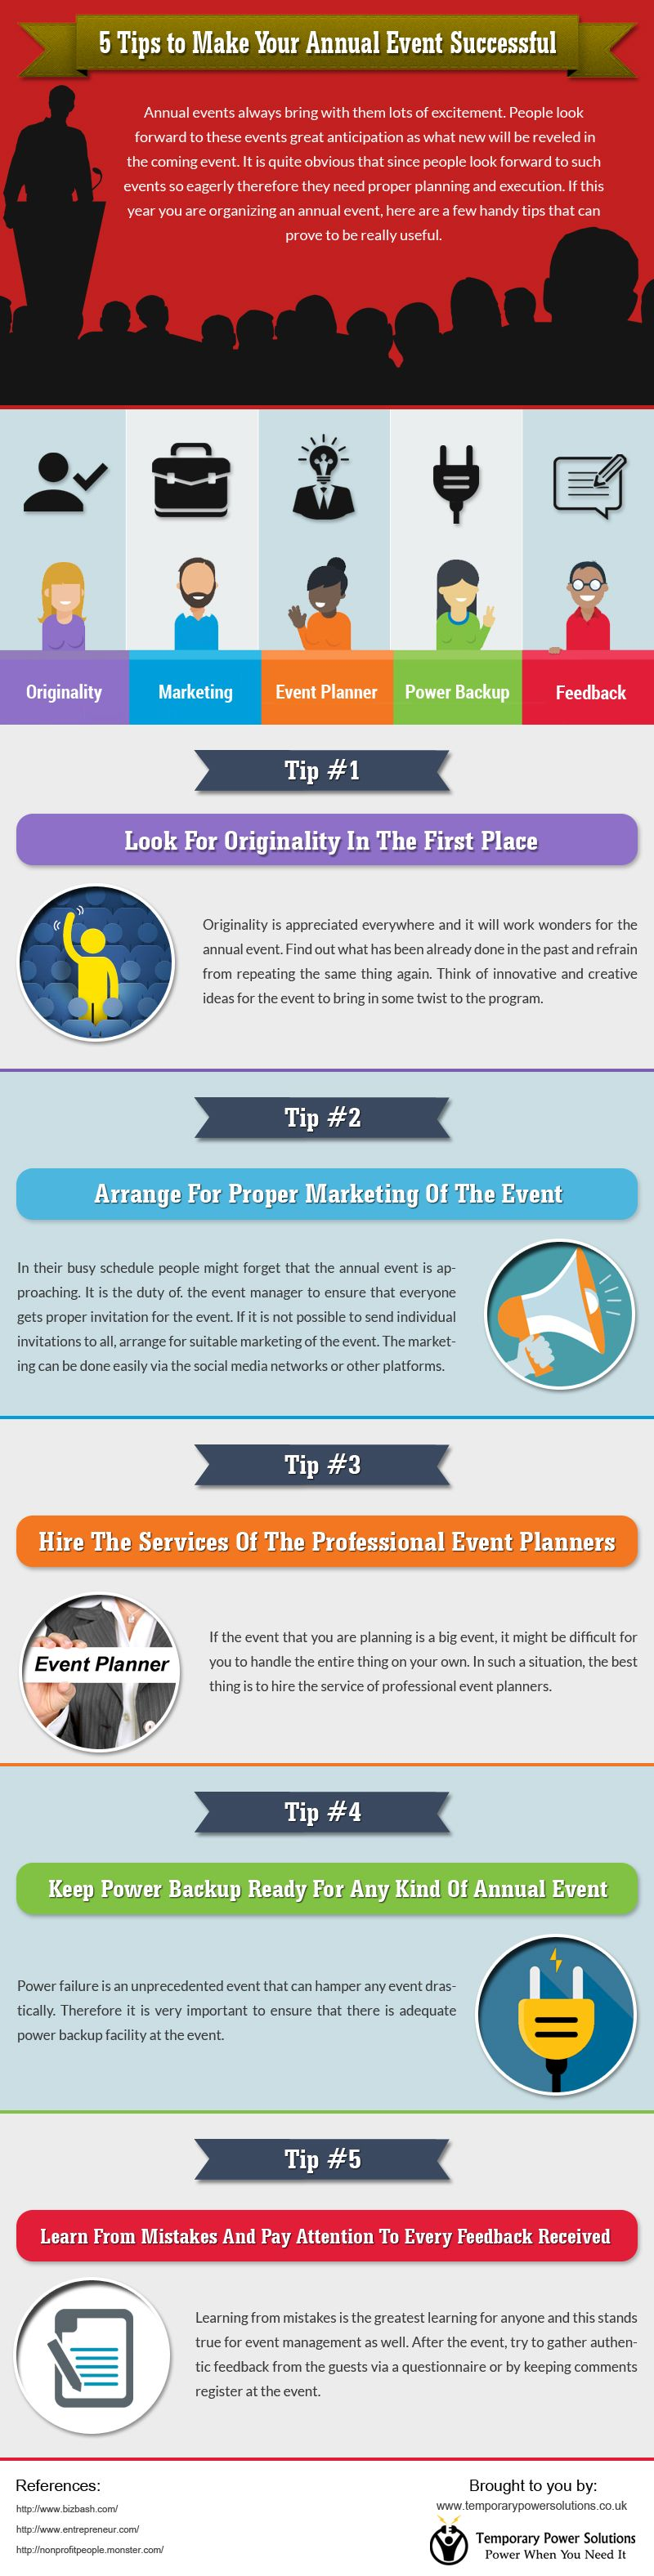 5 Tips to Make your Annual Event Successful #infographic